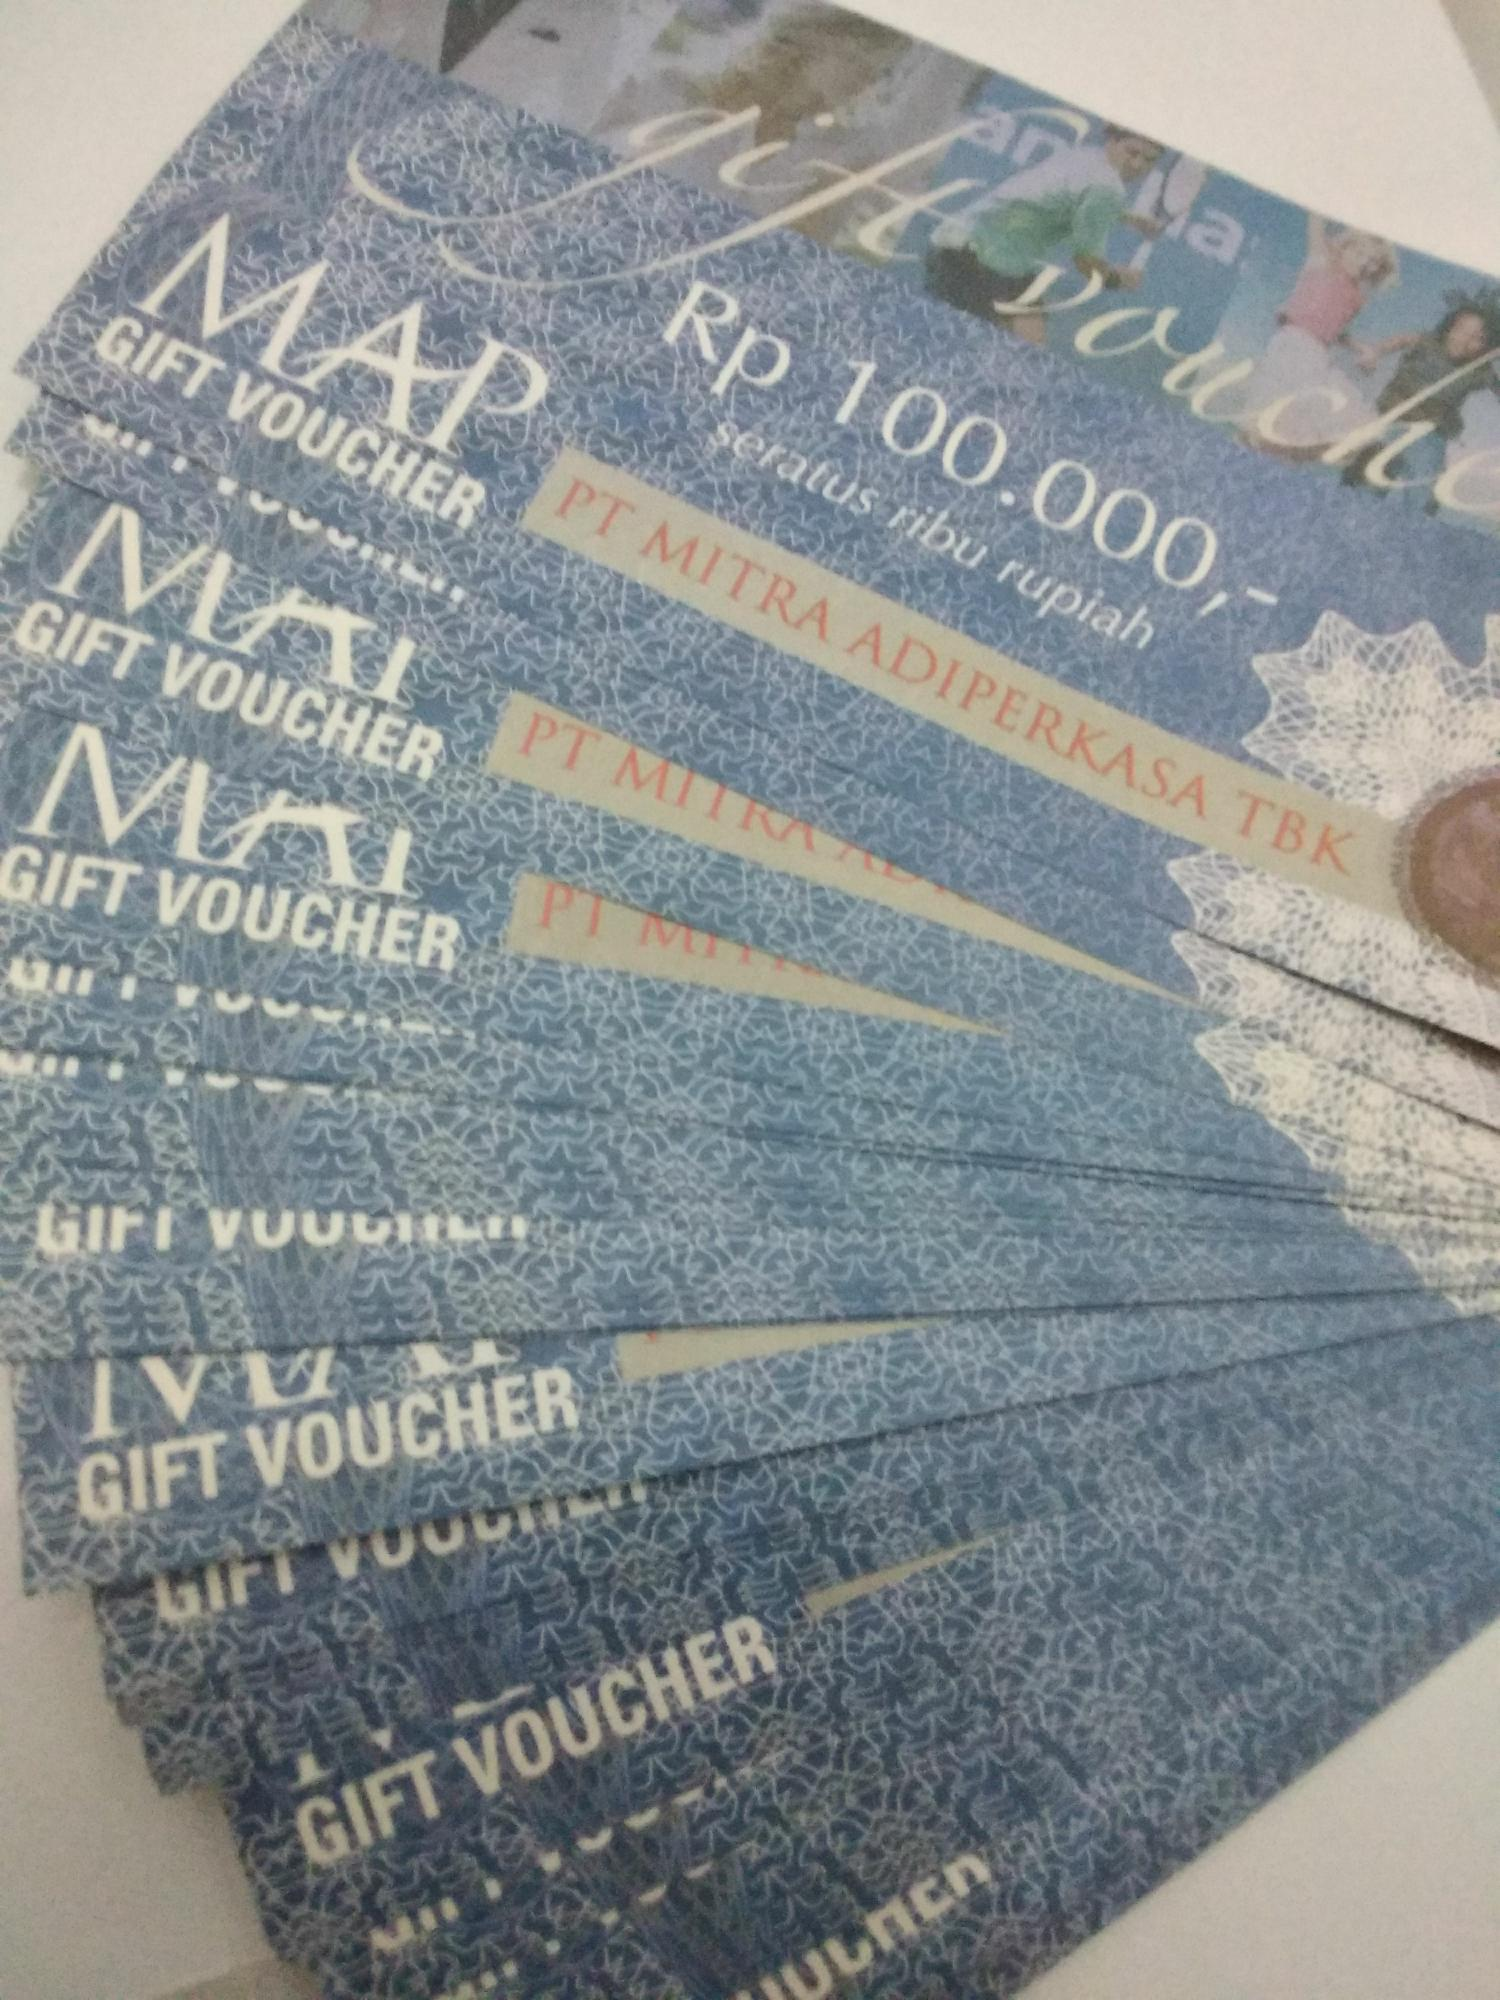 Voucher Map Rp 100.000 By Buy And Buy.